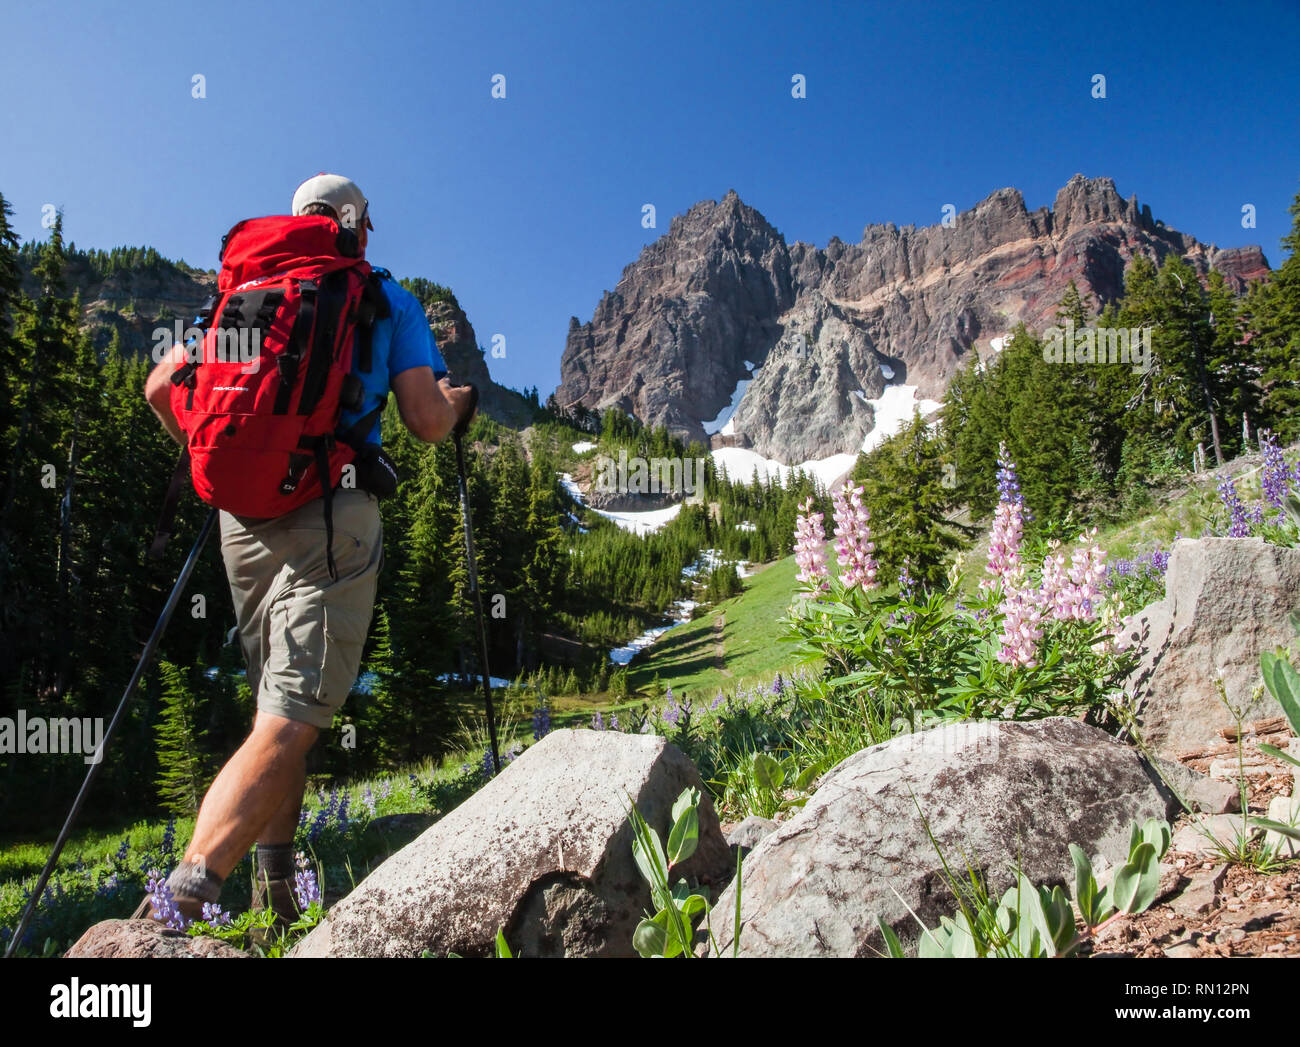 Backpacking into Three Fingered Jack Mountain near Sisters Oregon Stock Photo